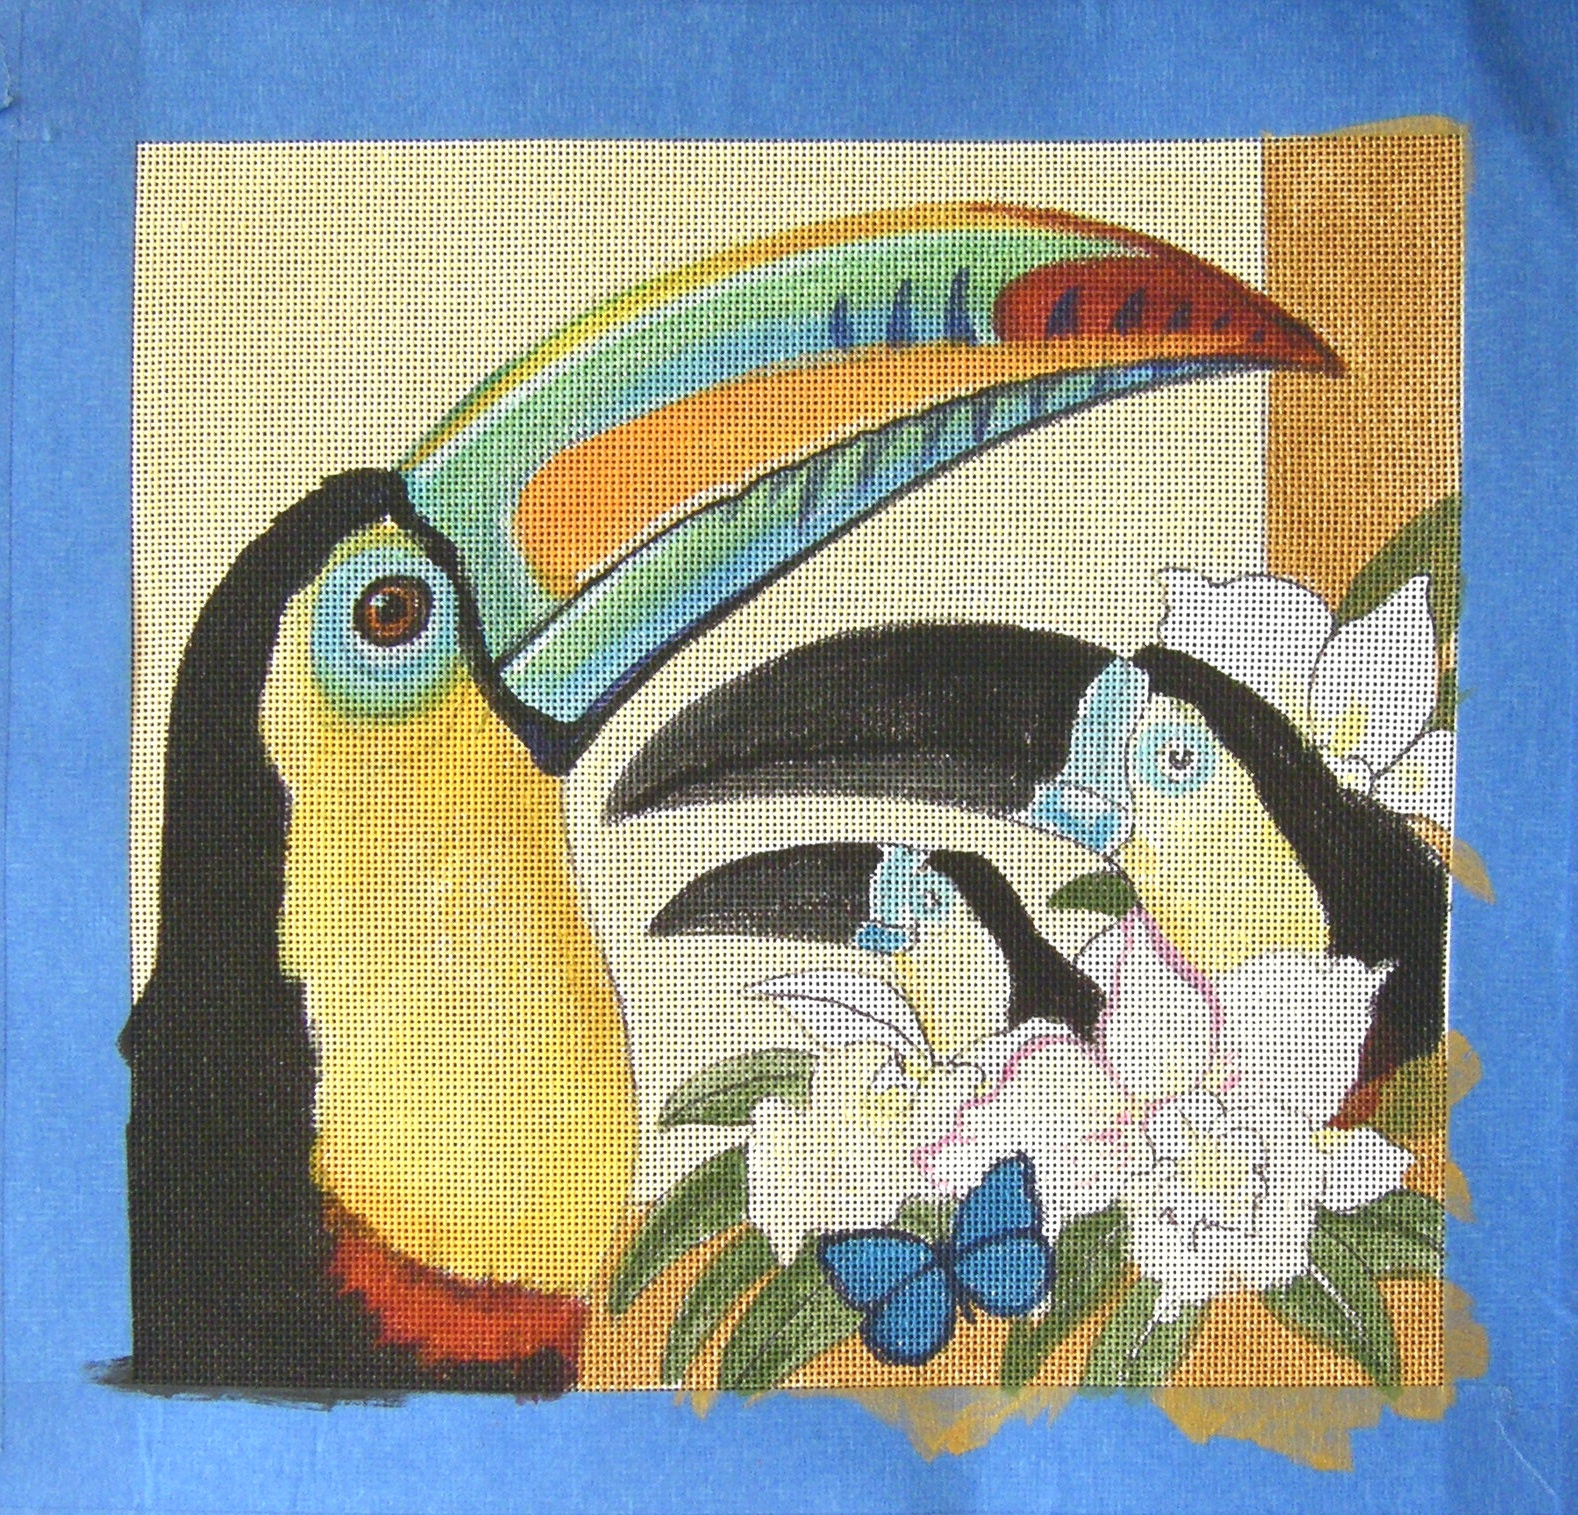 a toucans life cycle